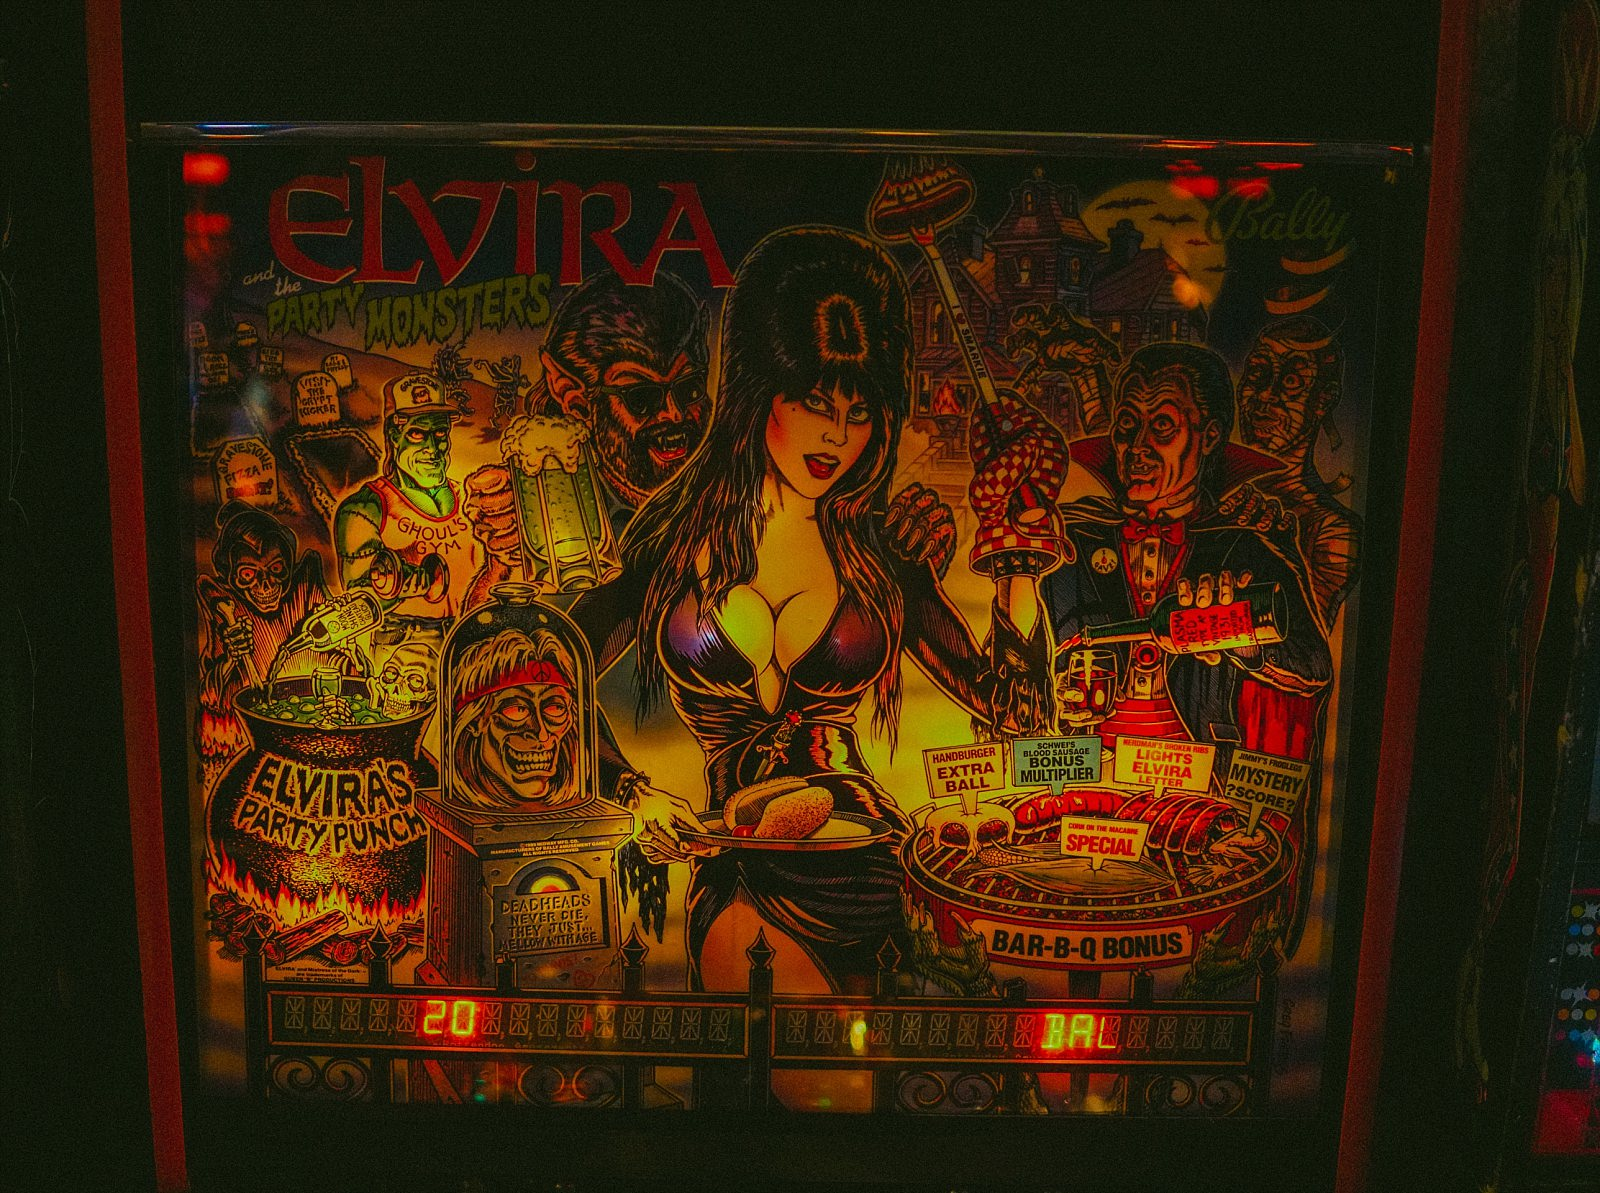 pinball machine graphics